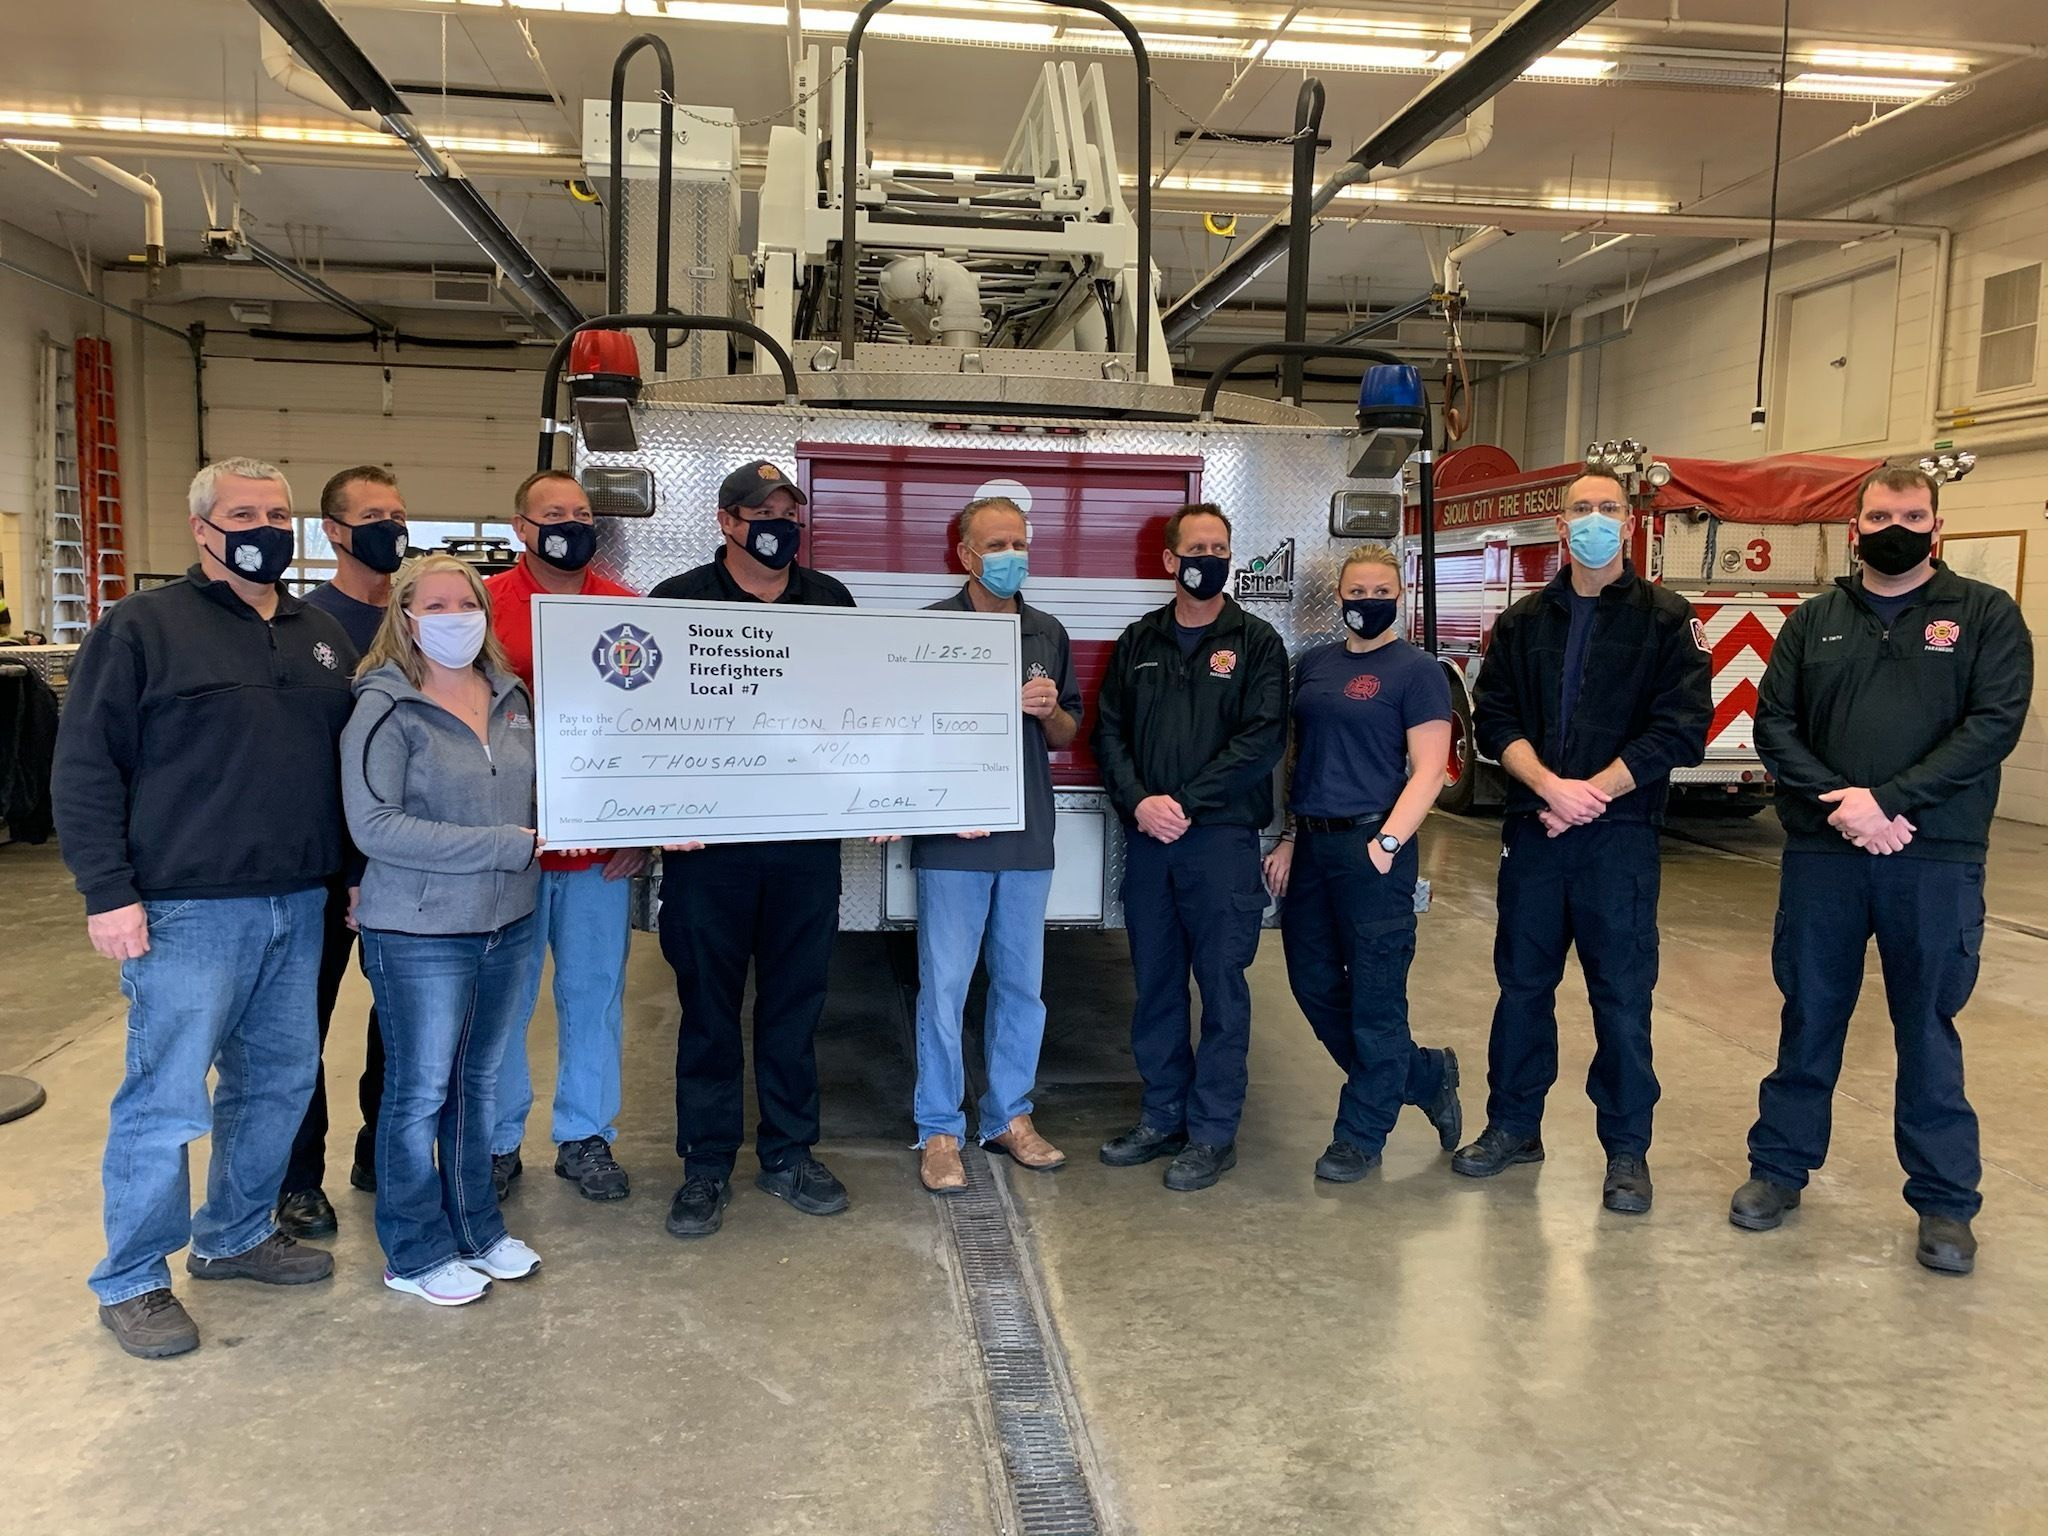 Sioux City Professional Firefighters Local 7 Union makes holiday donation